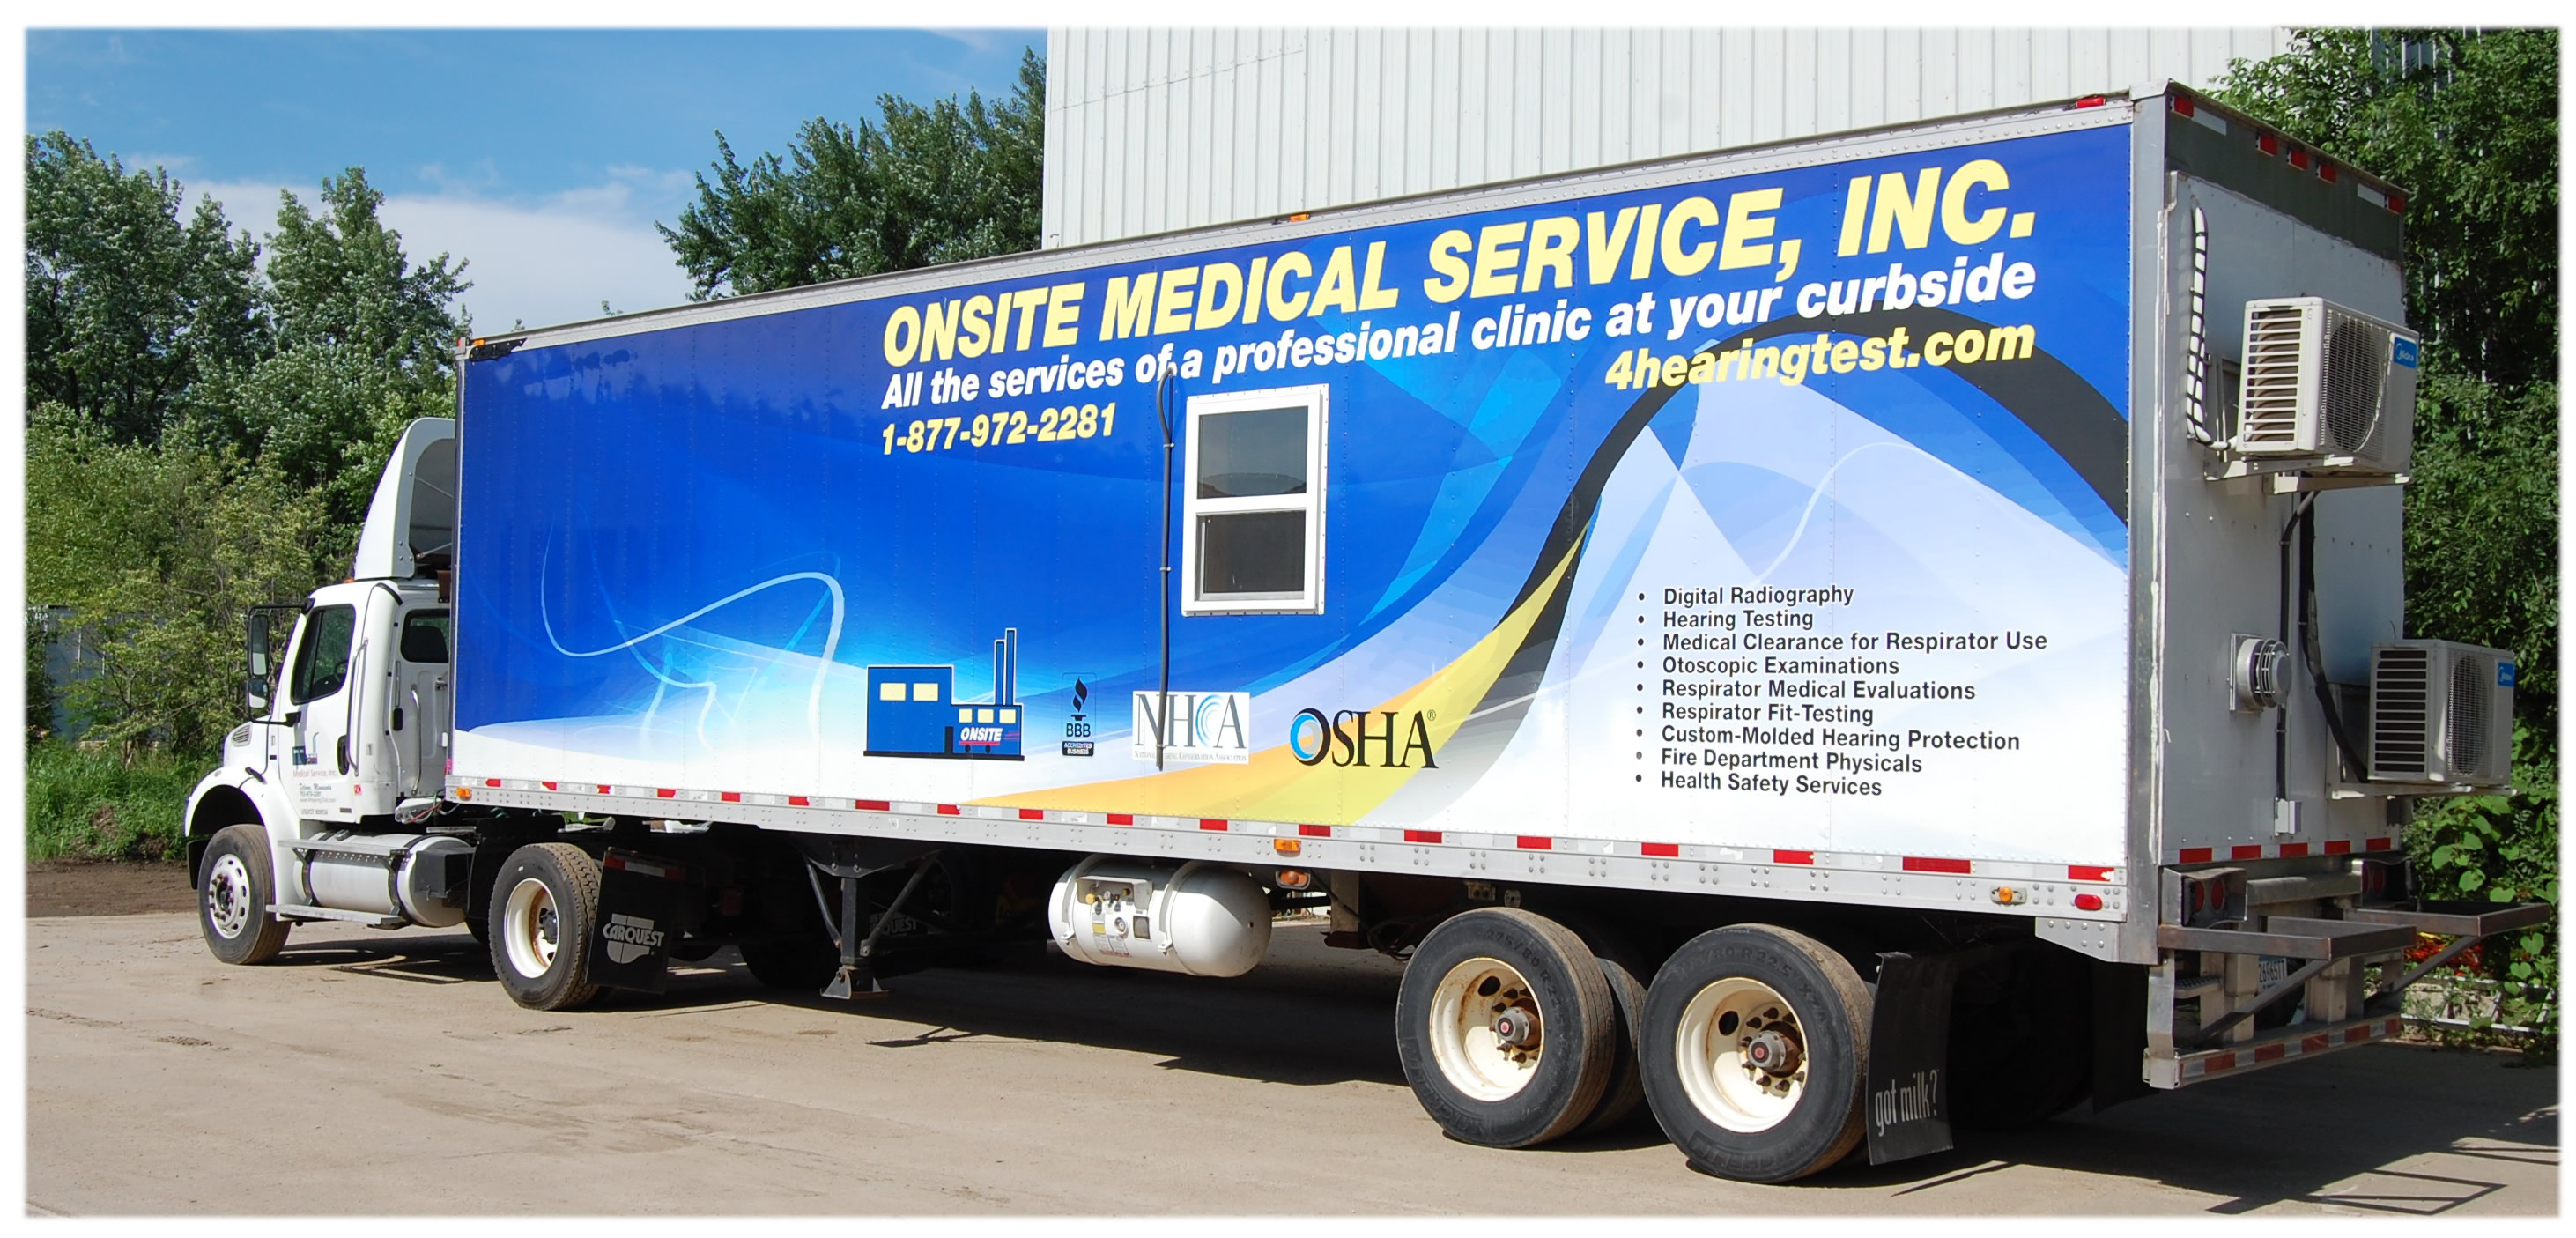 About Onsite Medical Testing by Onsite Medical Service, Inc